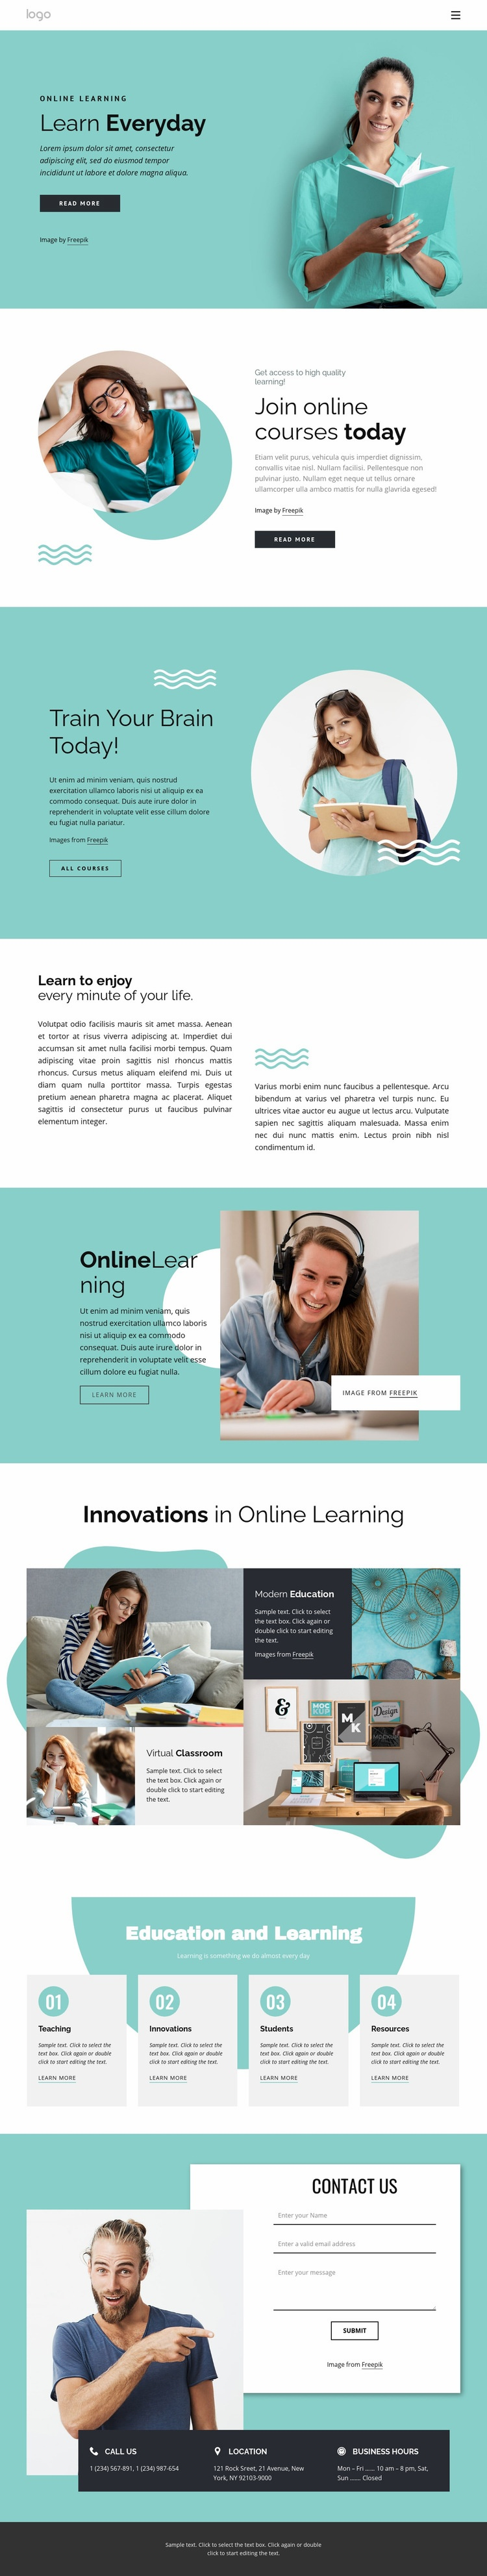 Learning is a lifelong process Web Page Design